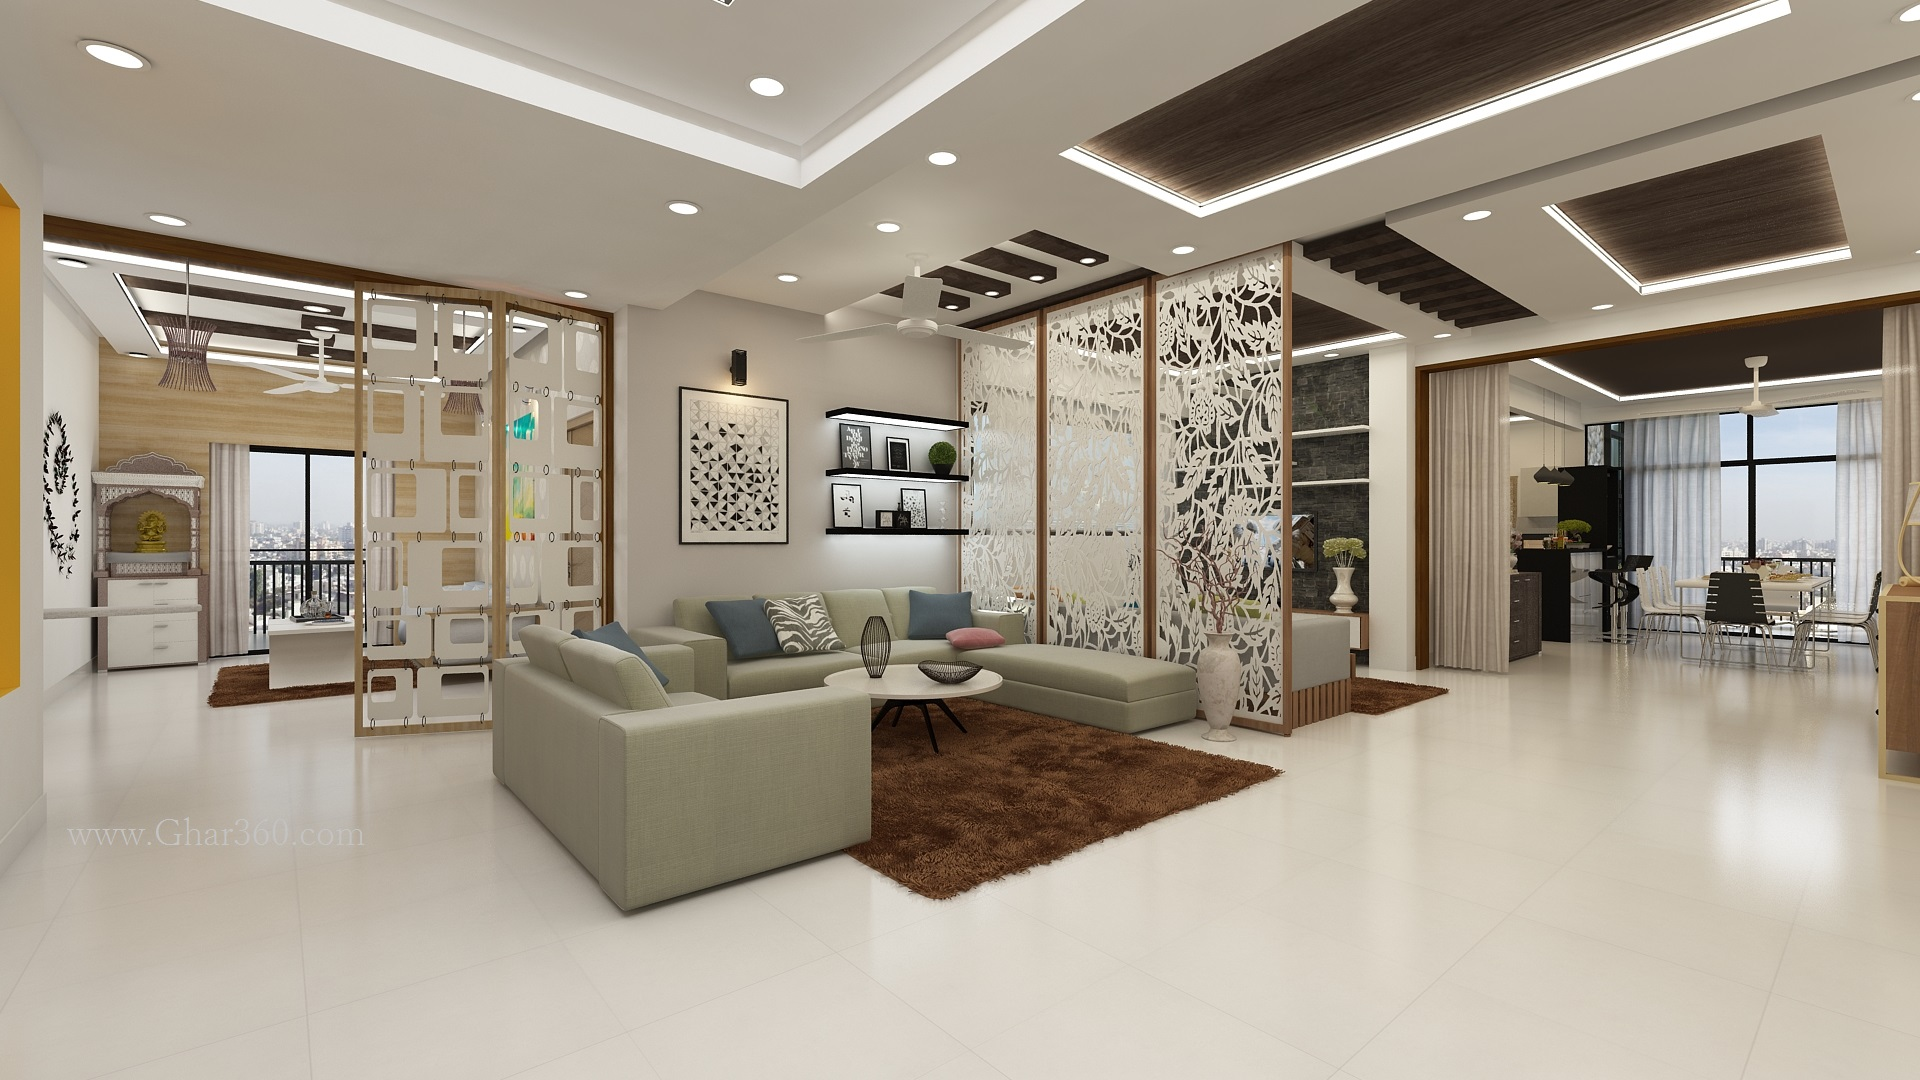 Luxury interior design by ghar360 best interior design for Interior designs in bangalore